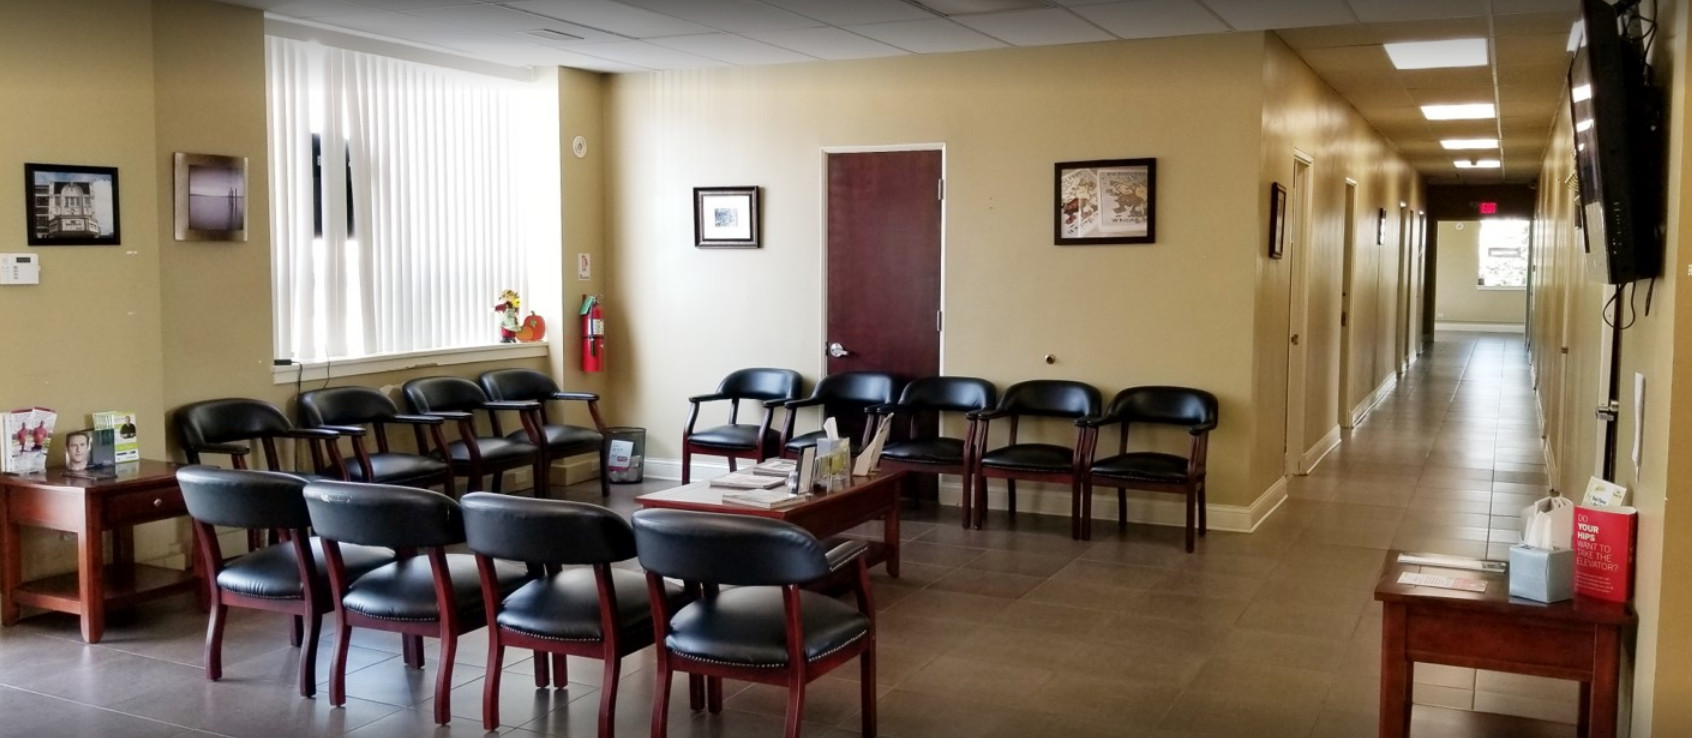 OccuMed Primary Care clinic, patient room, Whiting, IN